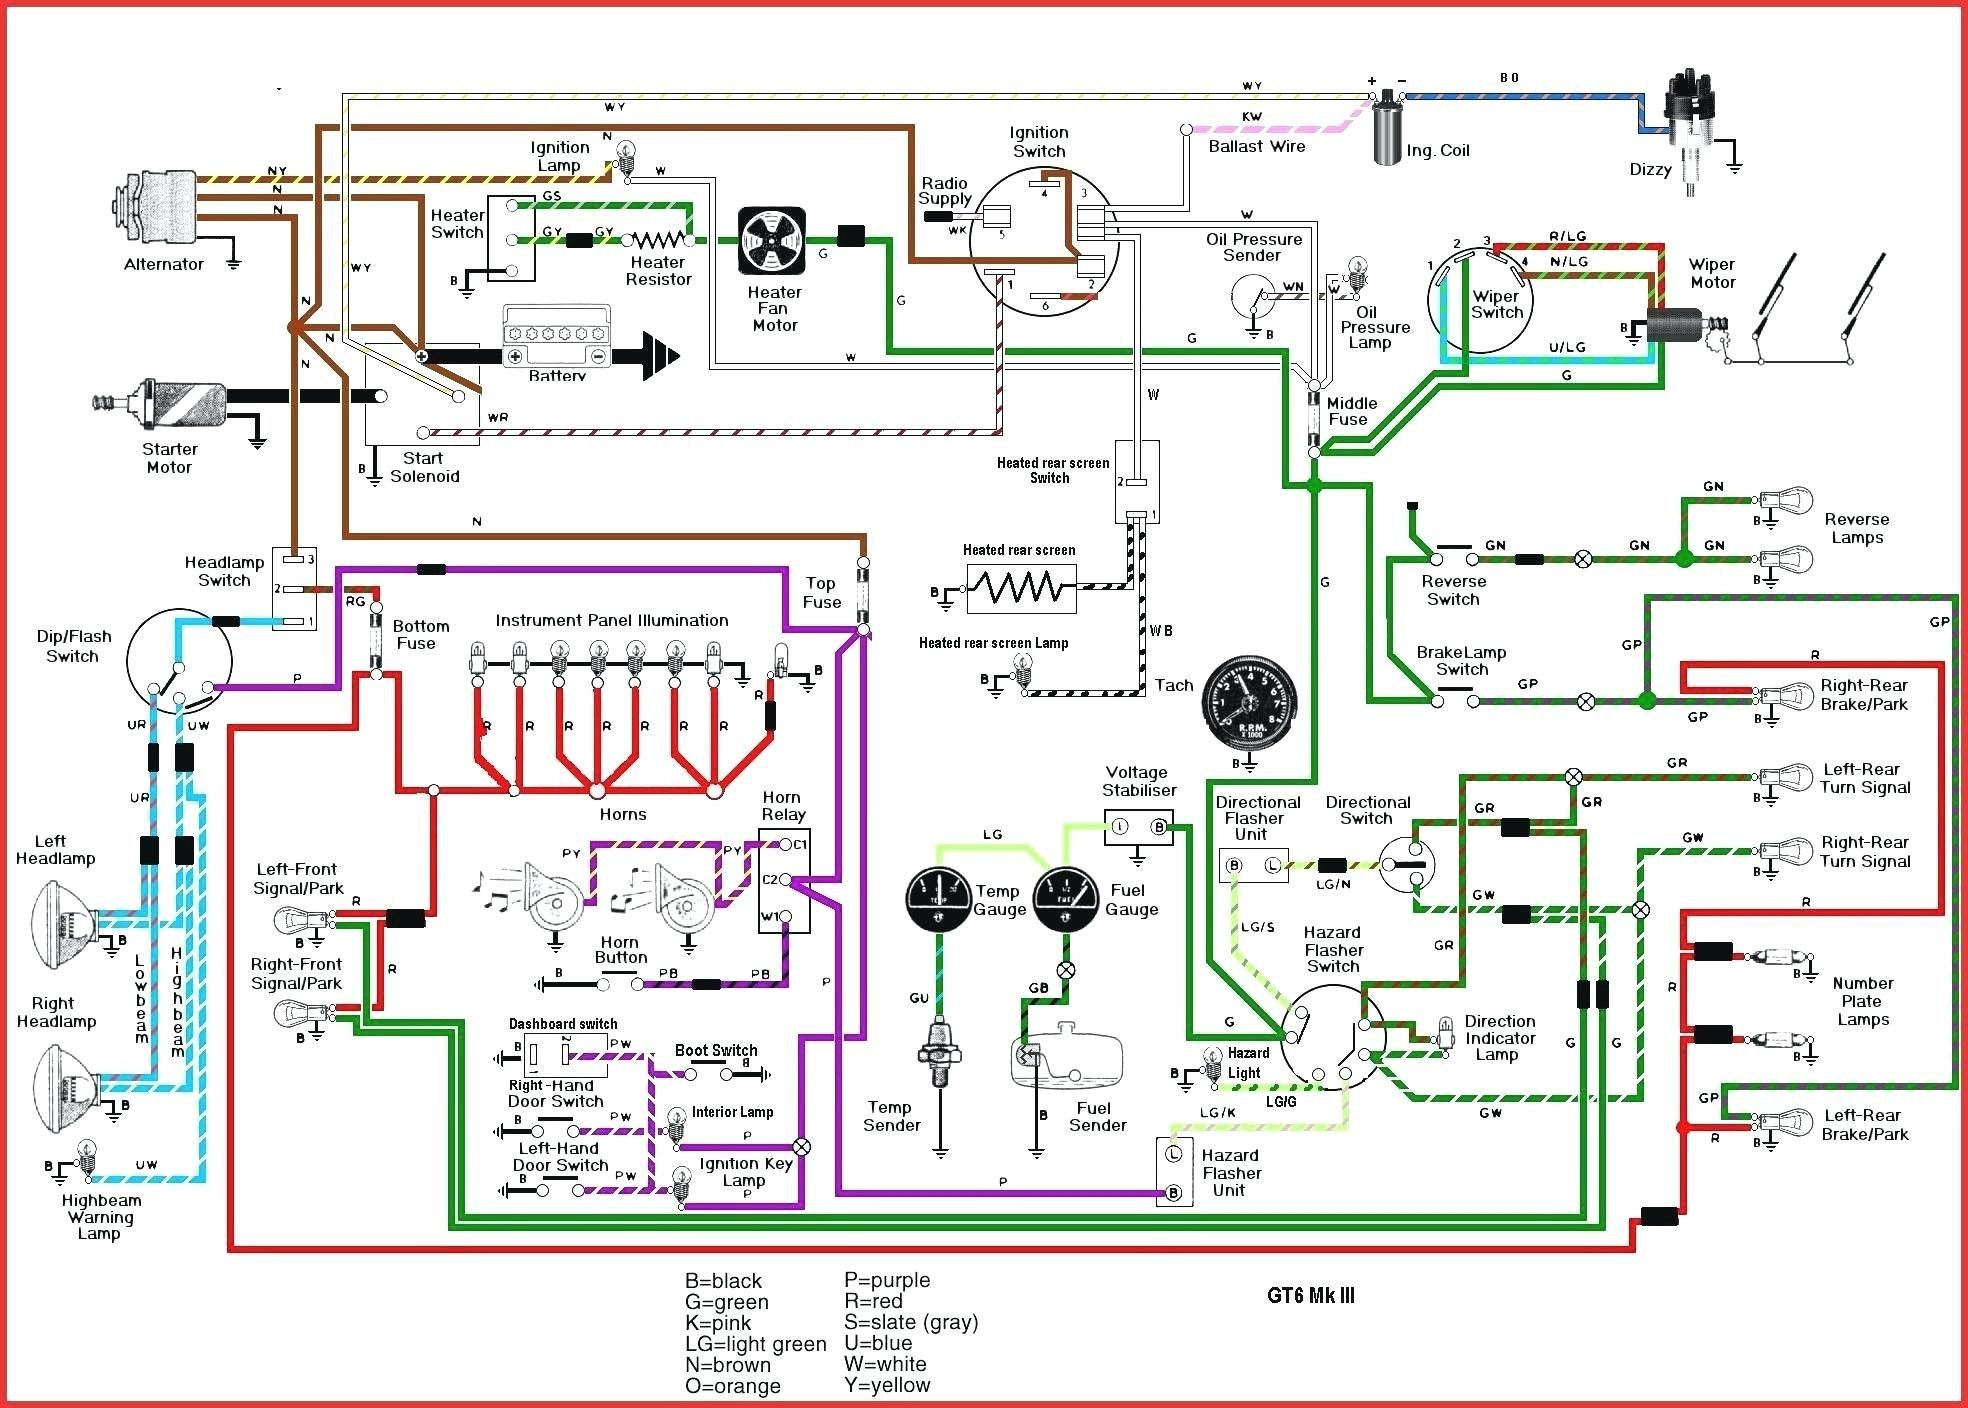 Wiring Schematic with Arduino 16 Automatic Mon Wiring Diagrams Design с изображениями Of Wiring Schematic with Arduino